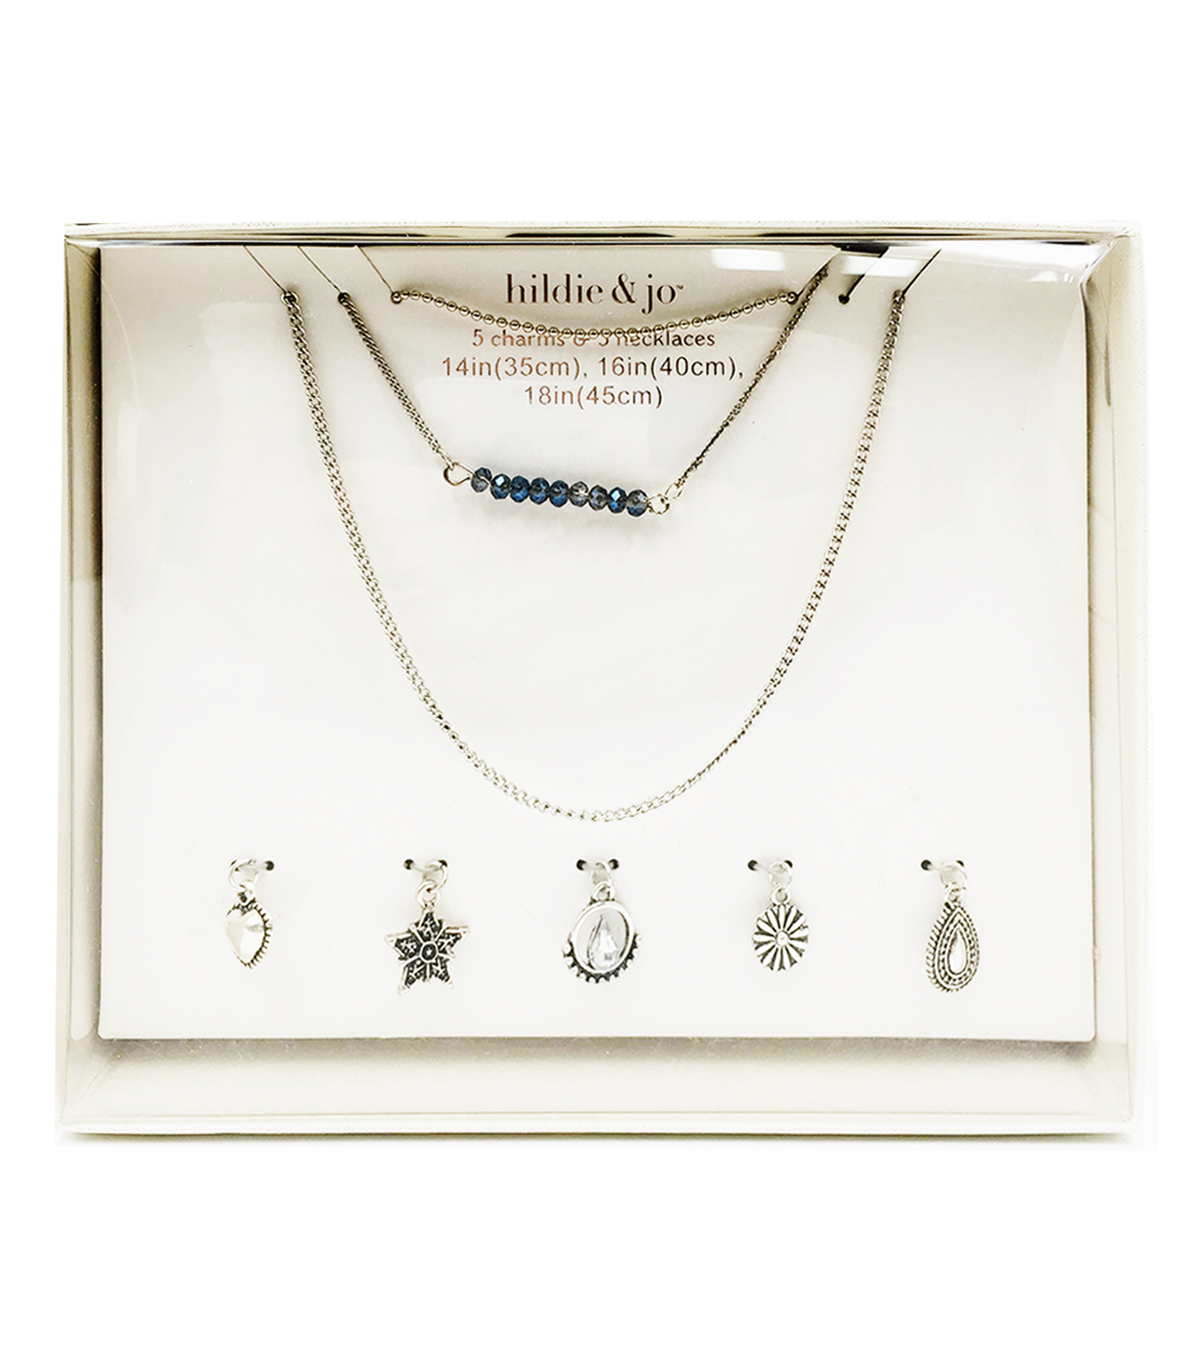 hildie & jo Silver Charms & Necklaces 3